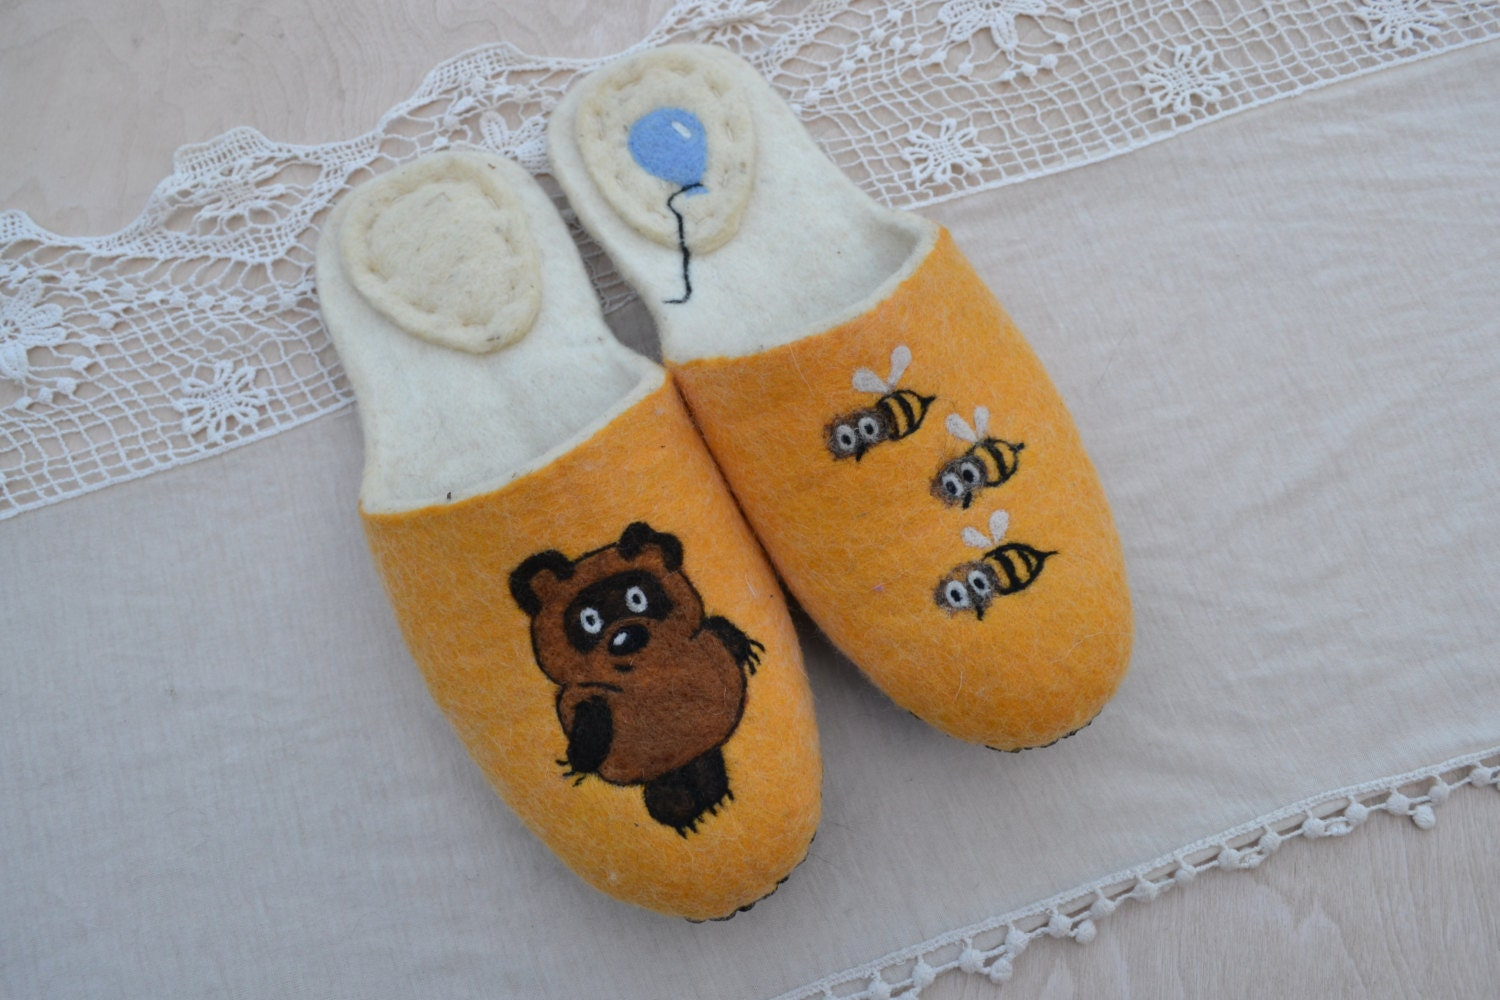 Slippers Winnie the handmade Pooh Felted slippers Ecofriendly handmade the felt shoes for home Christmas gift, russian Winnie Pooh felt snikers warm wool 957367